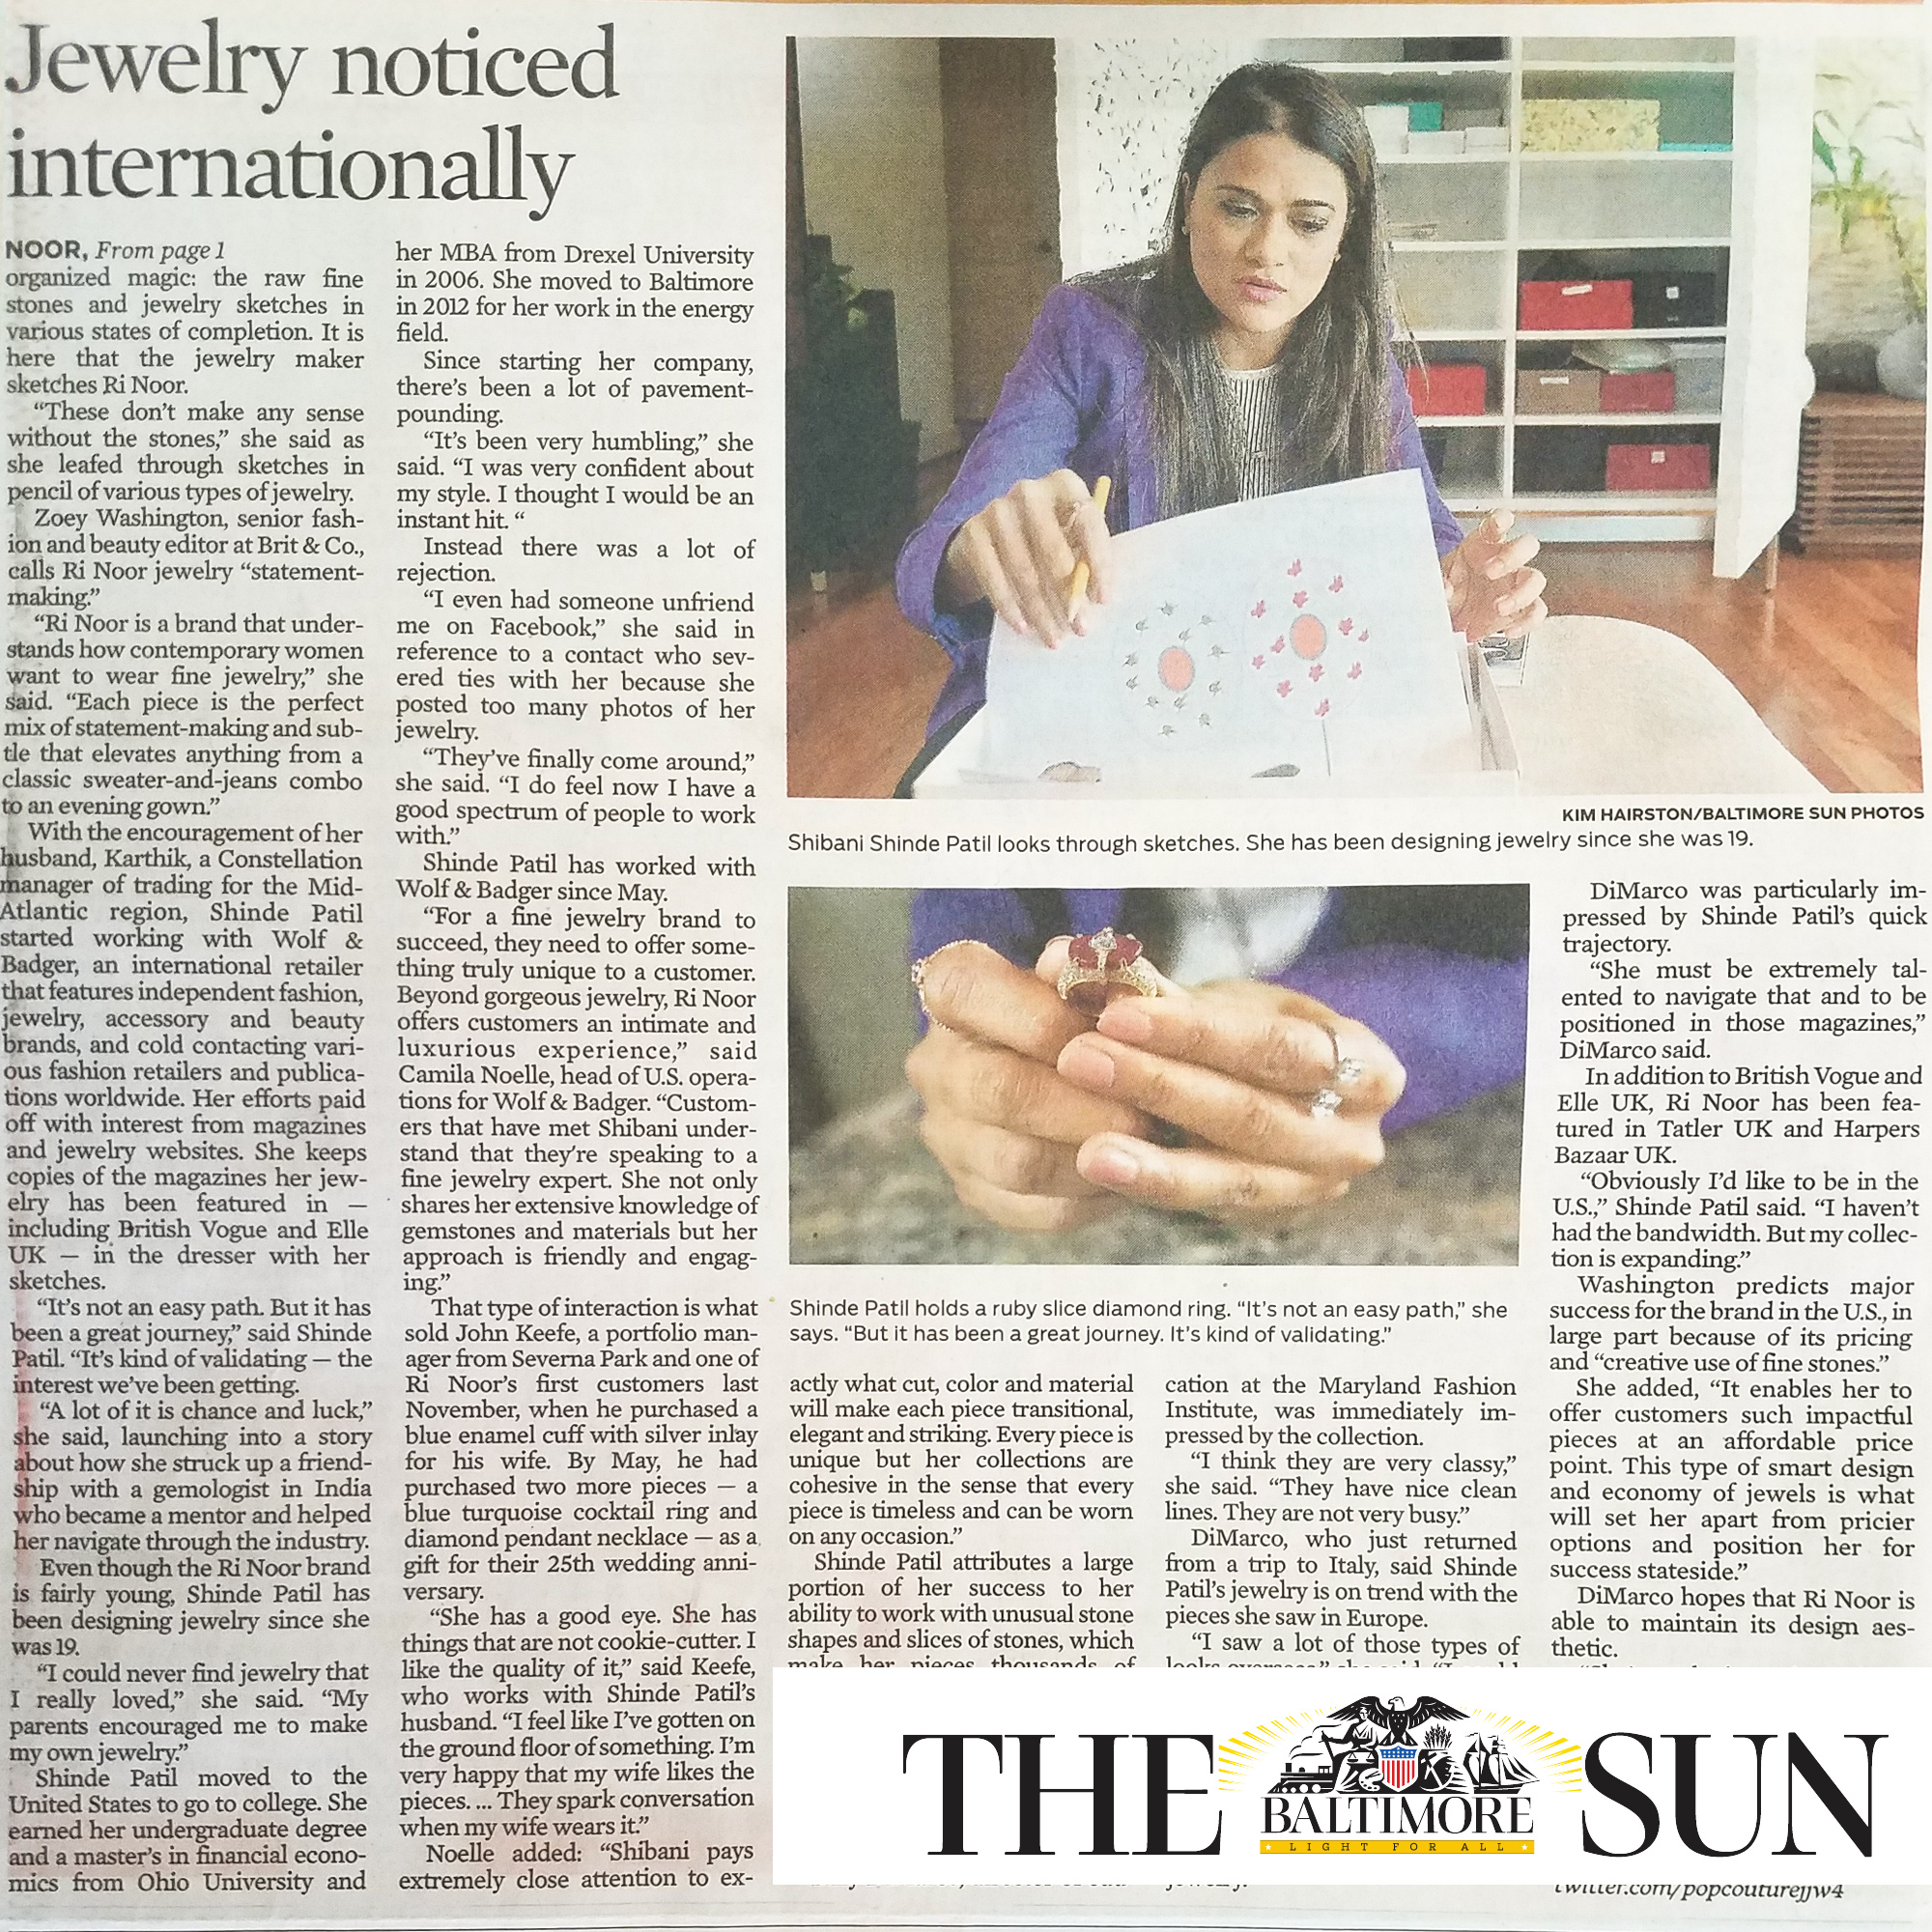 Cover story in the Baltimore Sun